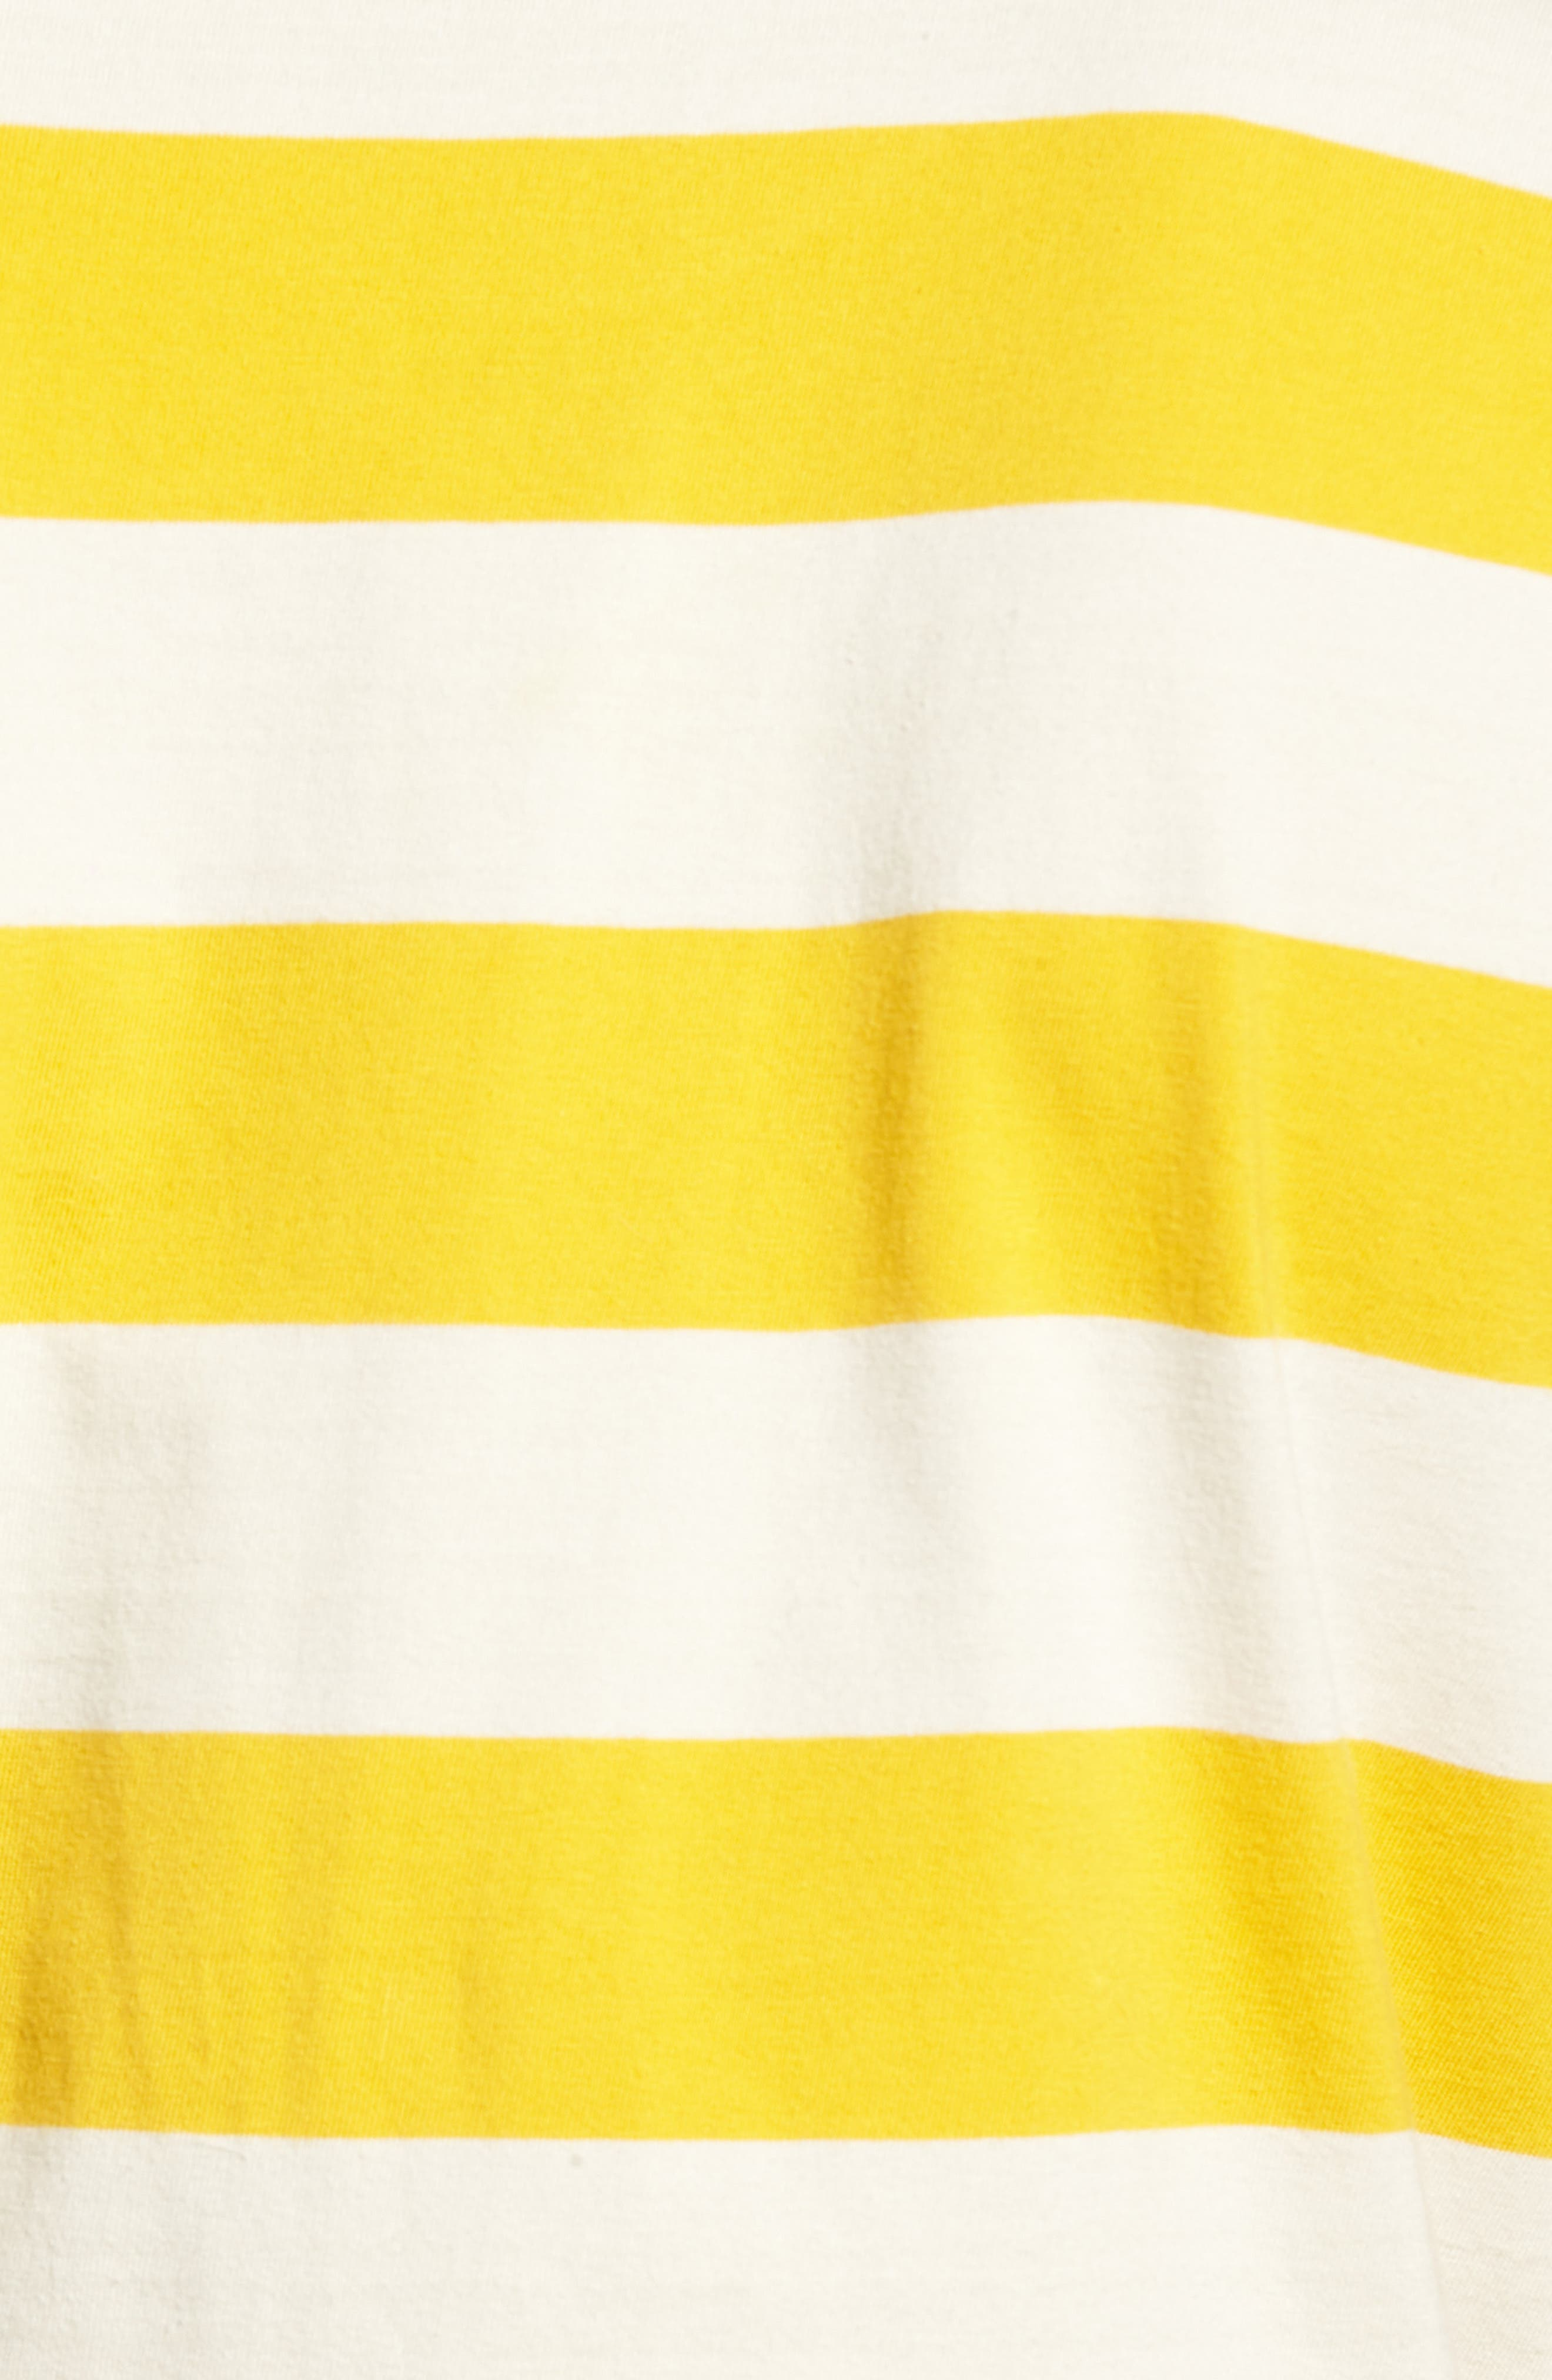 Broadcast Pocket T-Shirt,                             Alternate thumbnail 2, color,                             Natural/Mustard Yellow Stripe